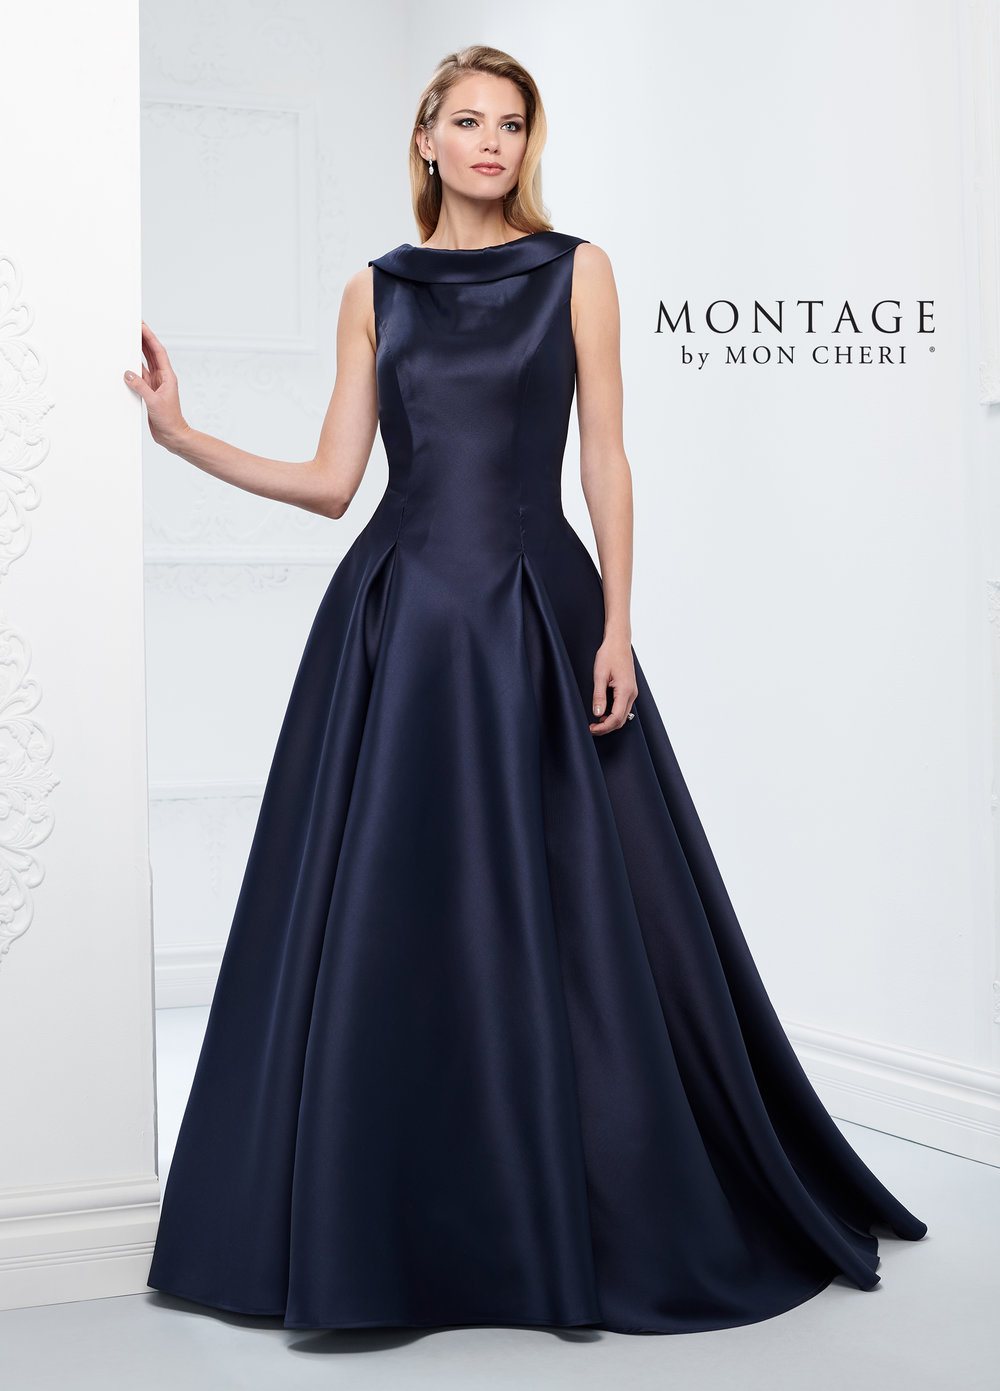 satin-full-skirt-gown-218921-B.jpg